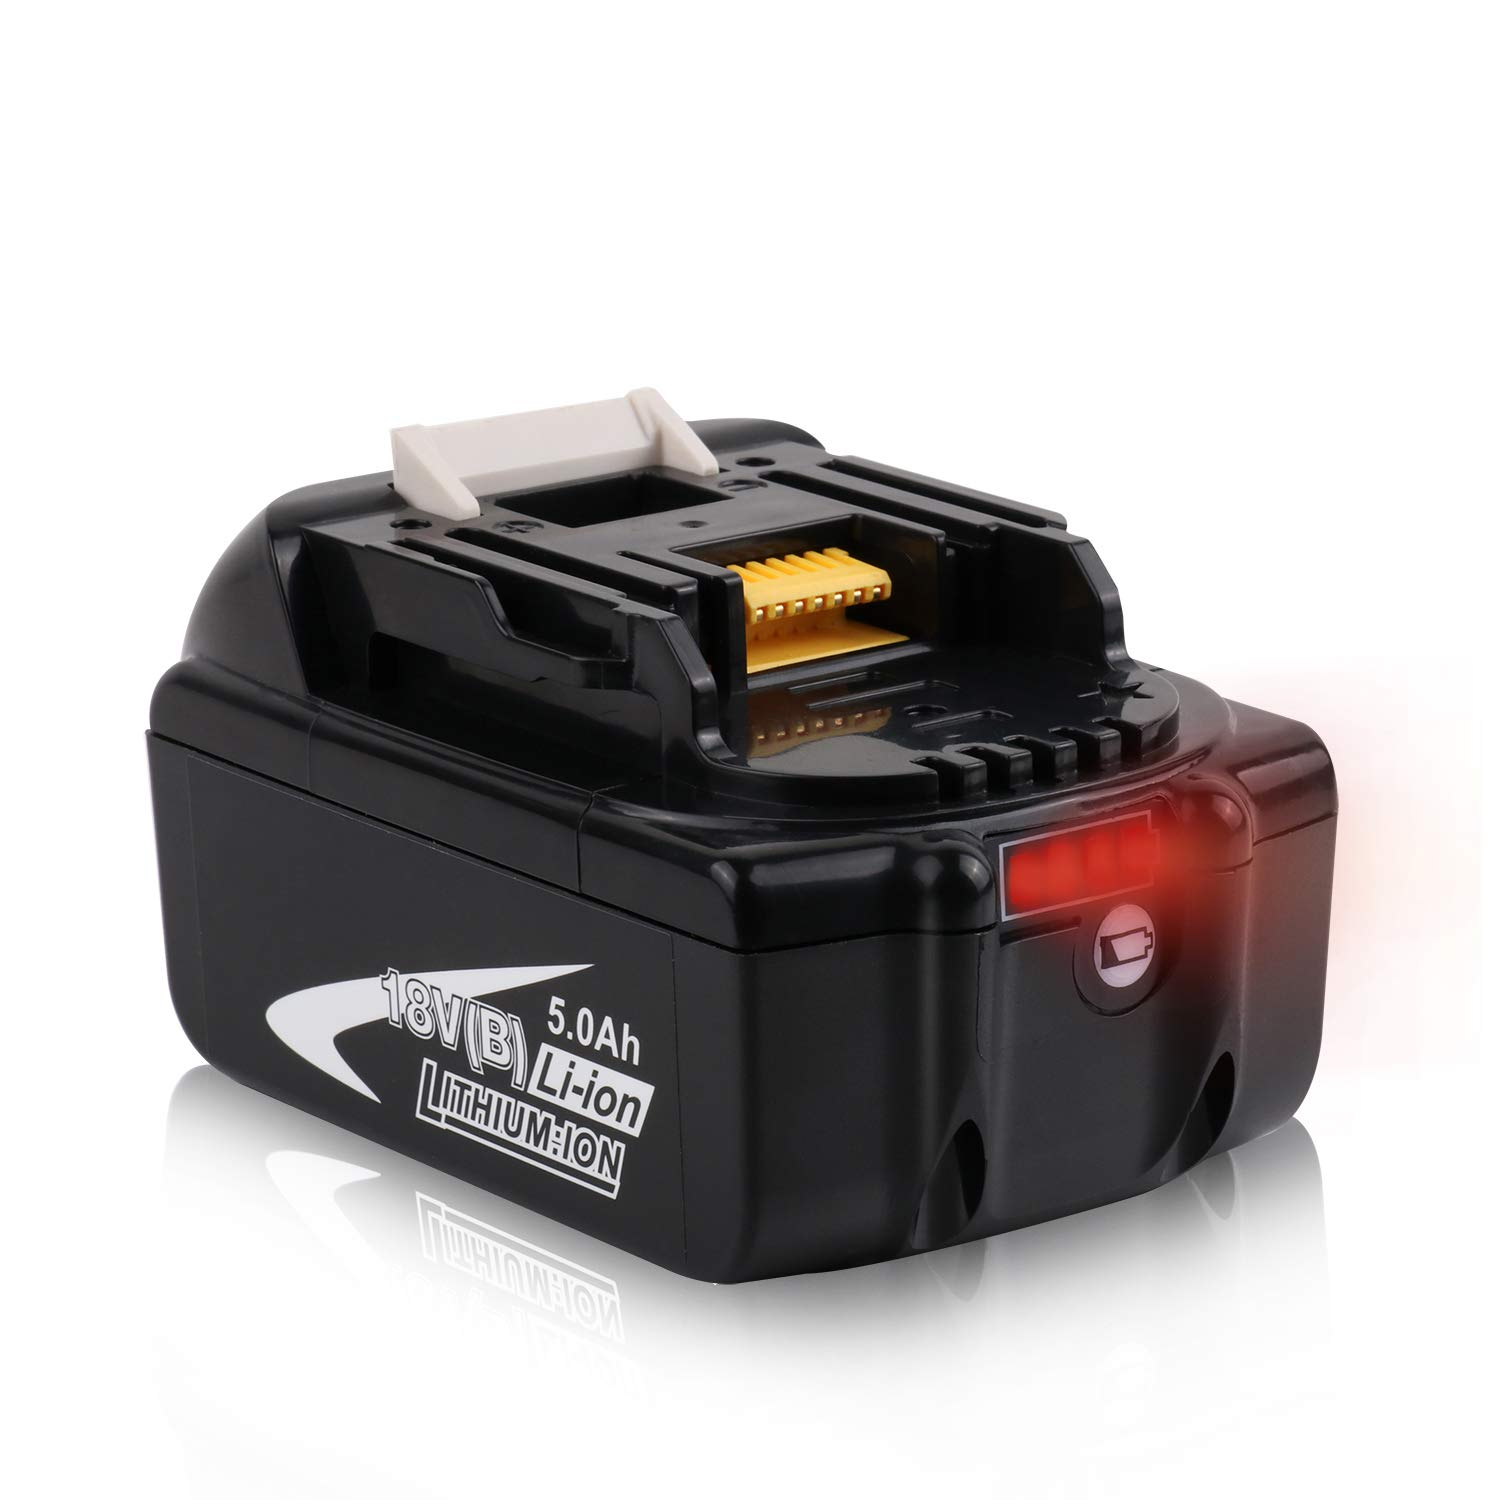 Batteriol Makita 18V 5.0Ah Li-ion LXT Battery Replacement for BL1850B BL1850 BL1840 BL1830 BL1820 Cordless Power Tool with LED Charge Indicator